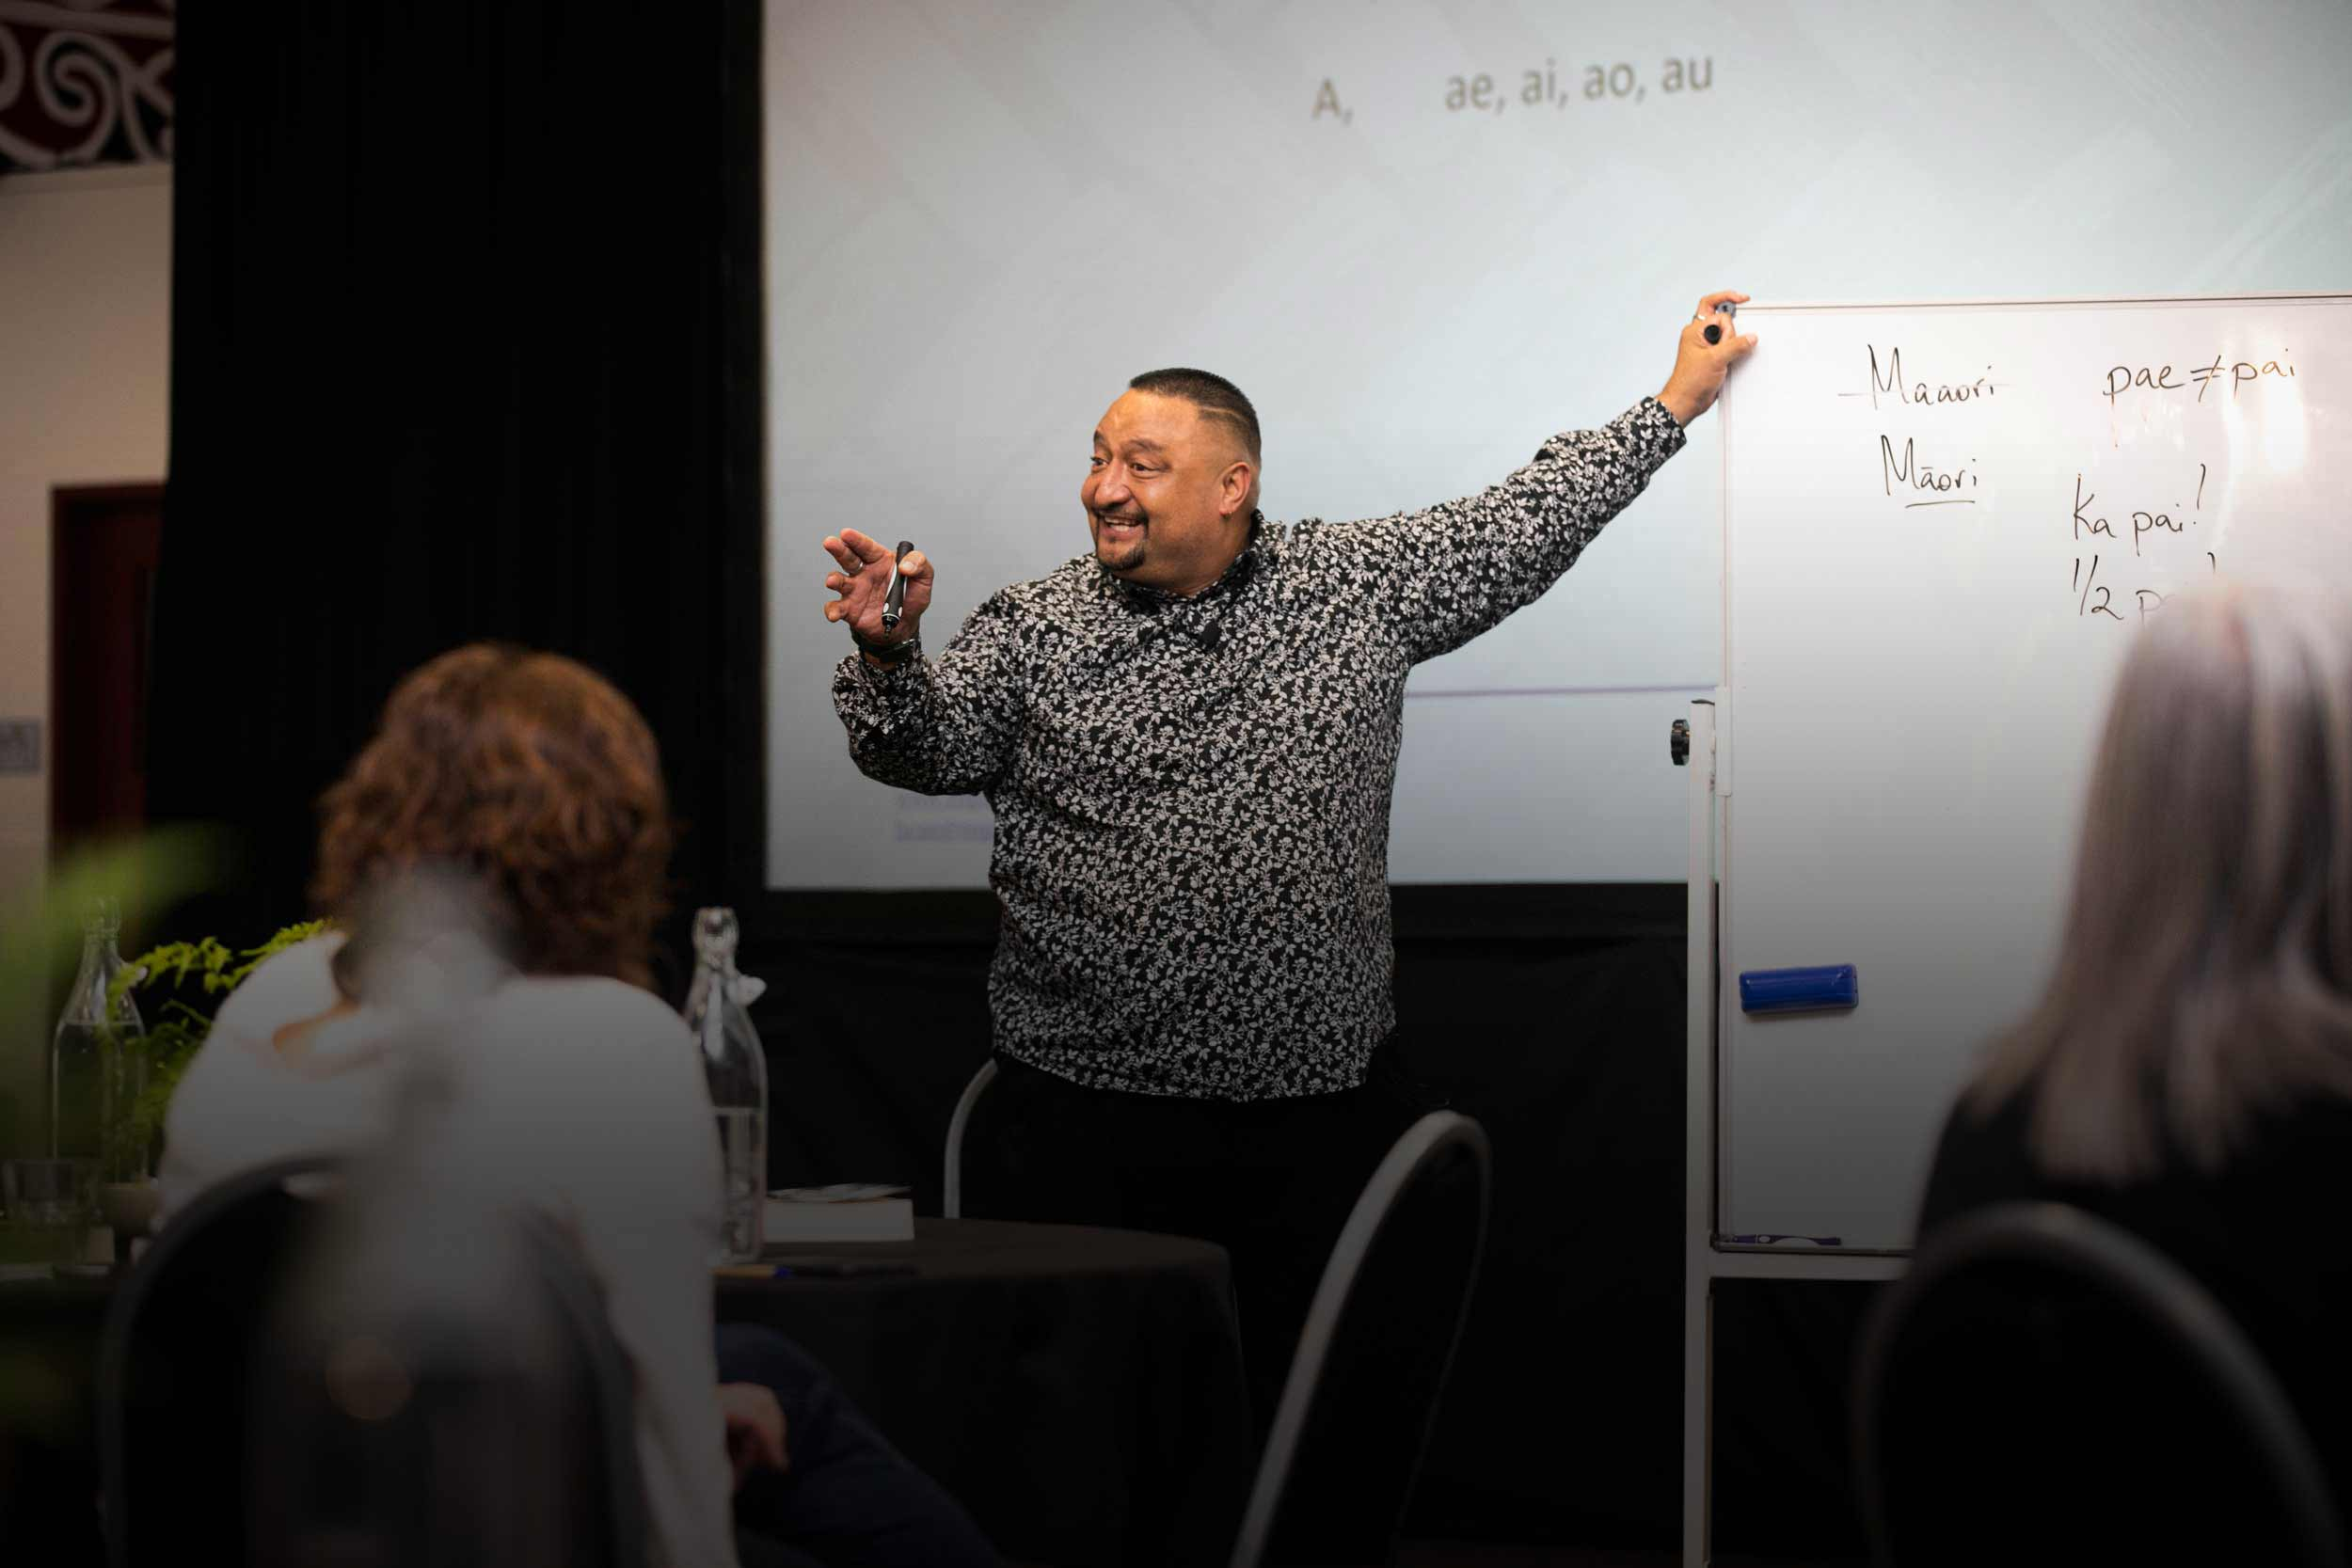 Engaging-Well - leading toward cultural intelligence in order to engage effectively with Māori. Engaging-Well services, Te Tiriti O Waitangi, Cultural Competence, Te Reo Māori and Tikanga Māori, Mentoring & Advice and Māori Performing Arts.